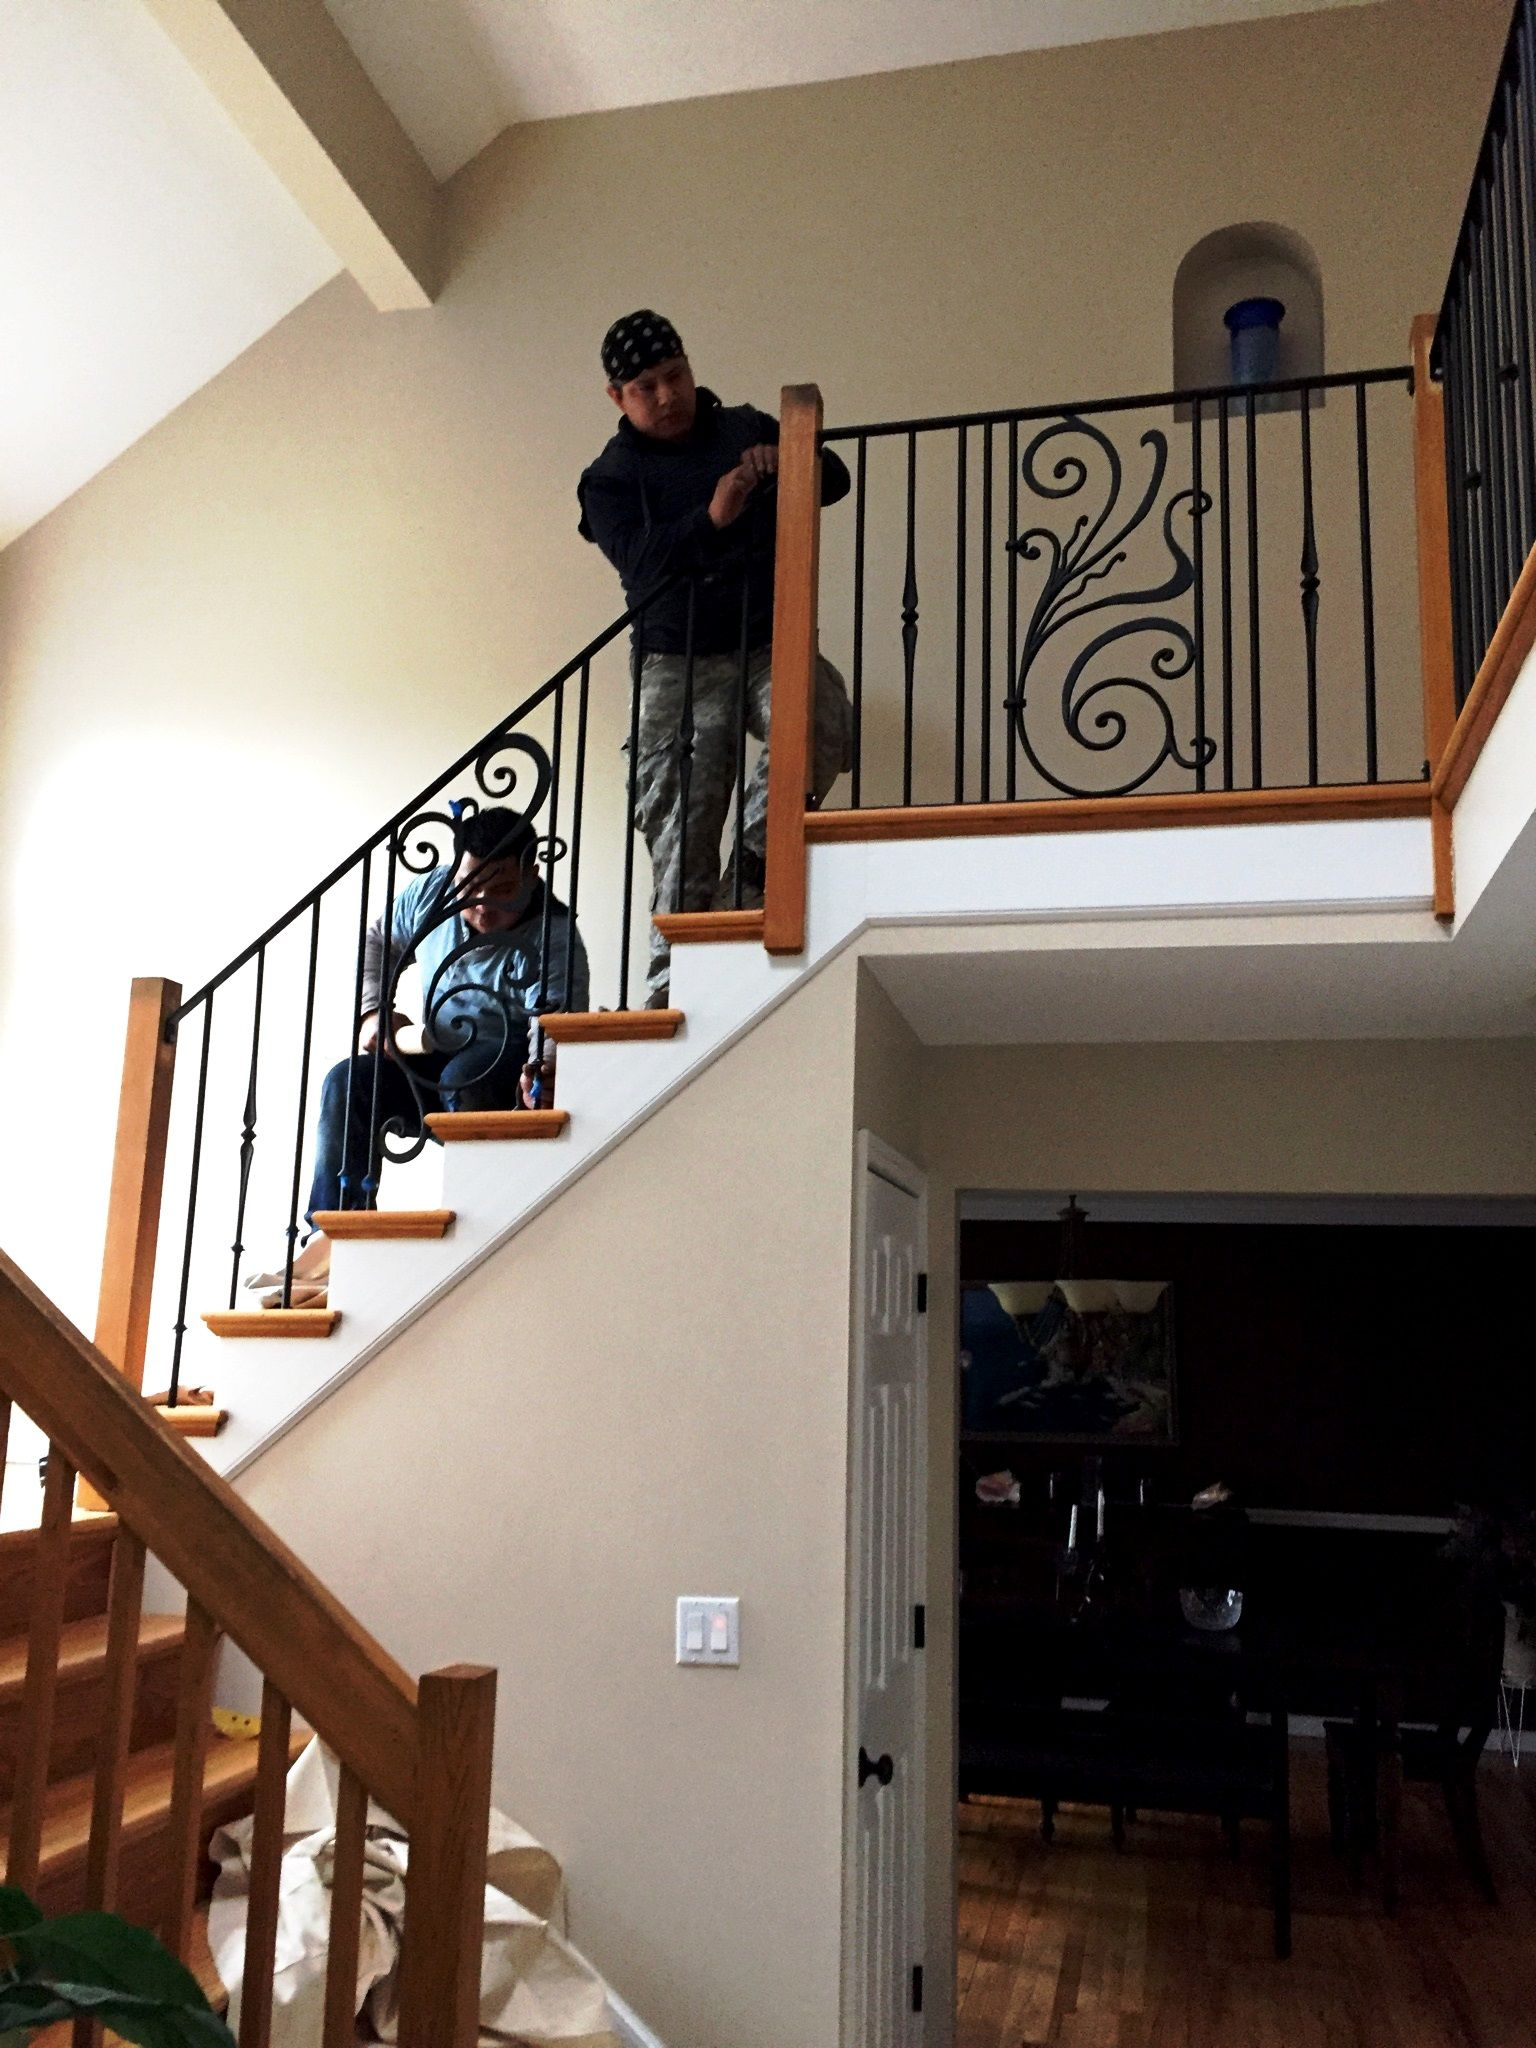 Interior Decorative Wrought Iron Railings Escalera   Rod Iron Interior Railings   Iron Work   White   Steel   Route   Staircase